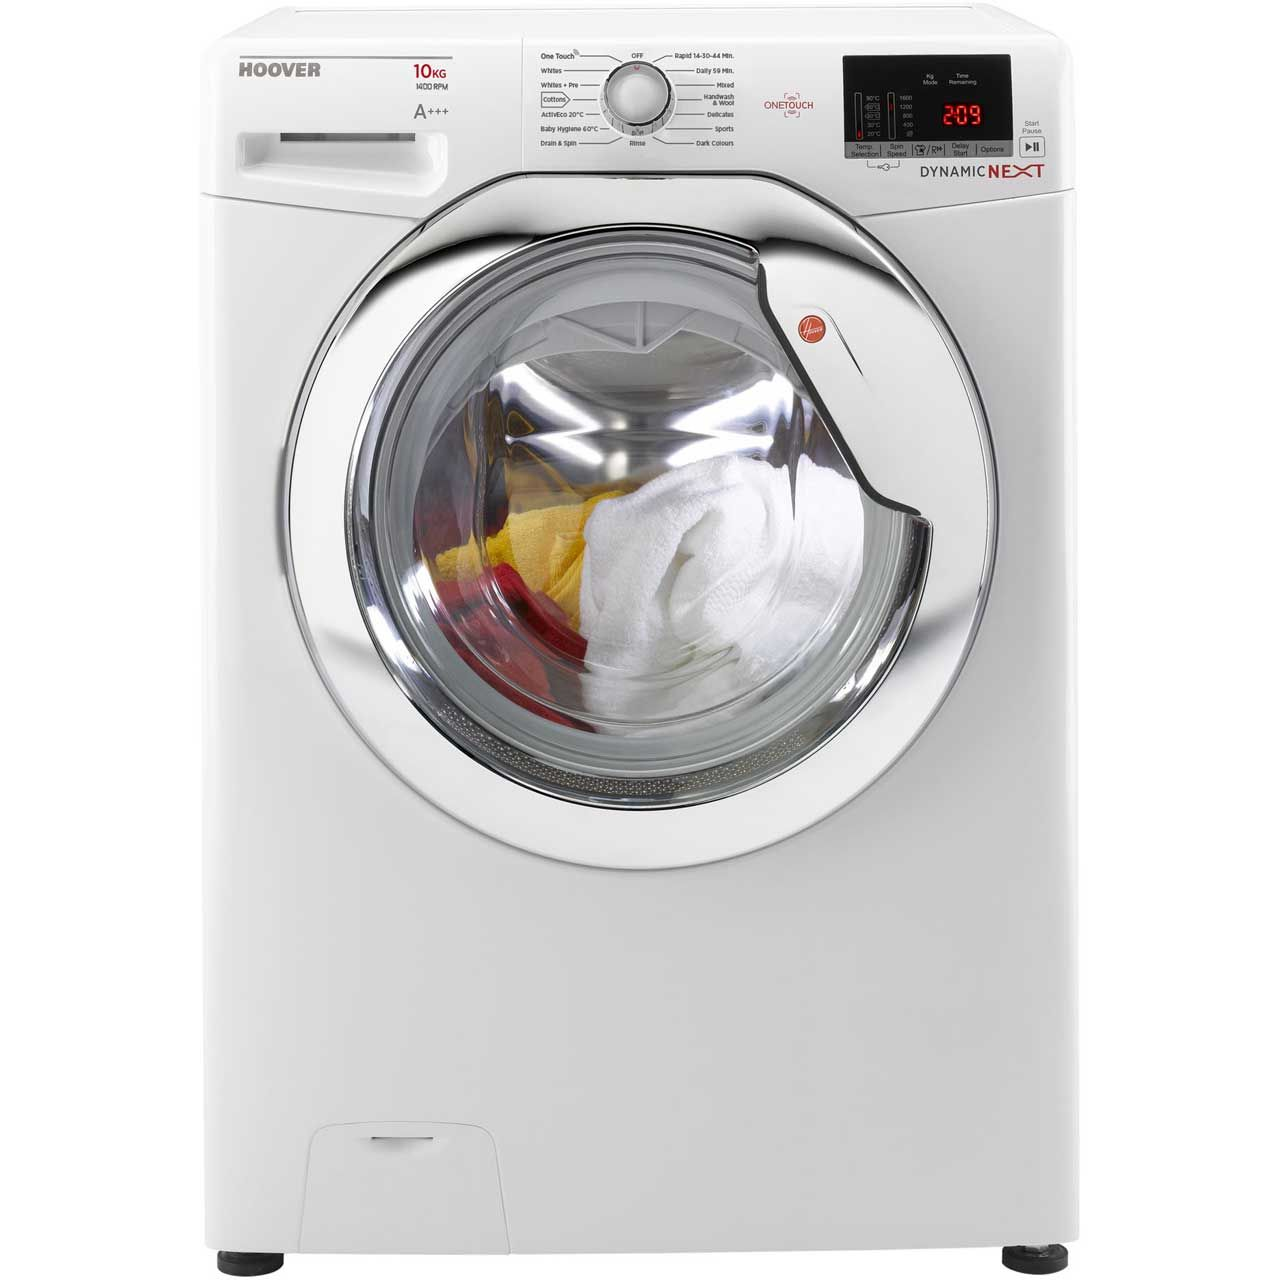 Dxoc410c3 Wh Hoover Washing Machine 10kg White Ao Com Ideas For 2017 Washer Dryer Laundry Appliances Washing Machine